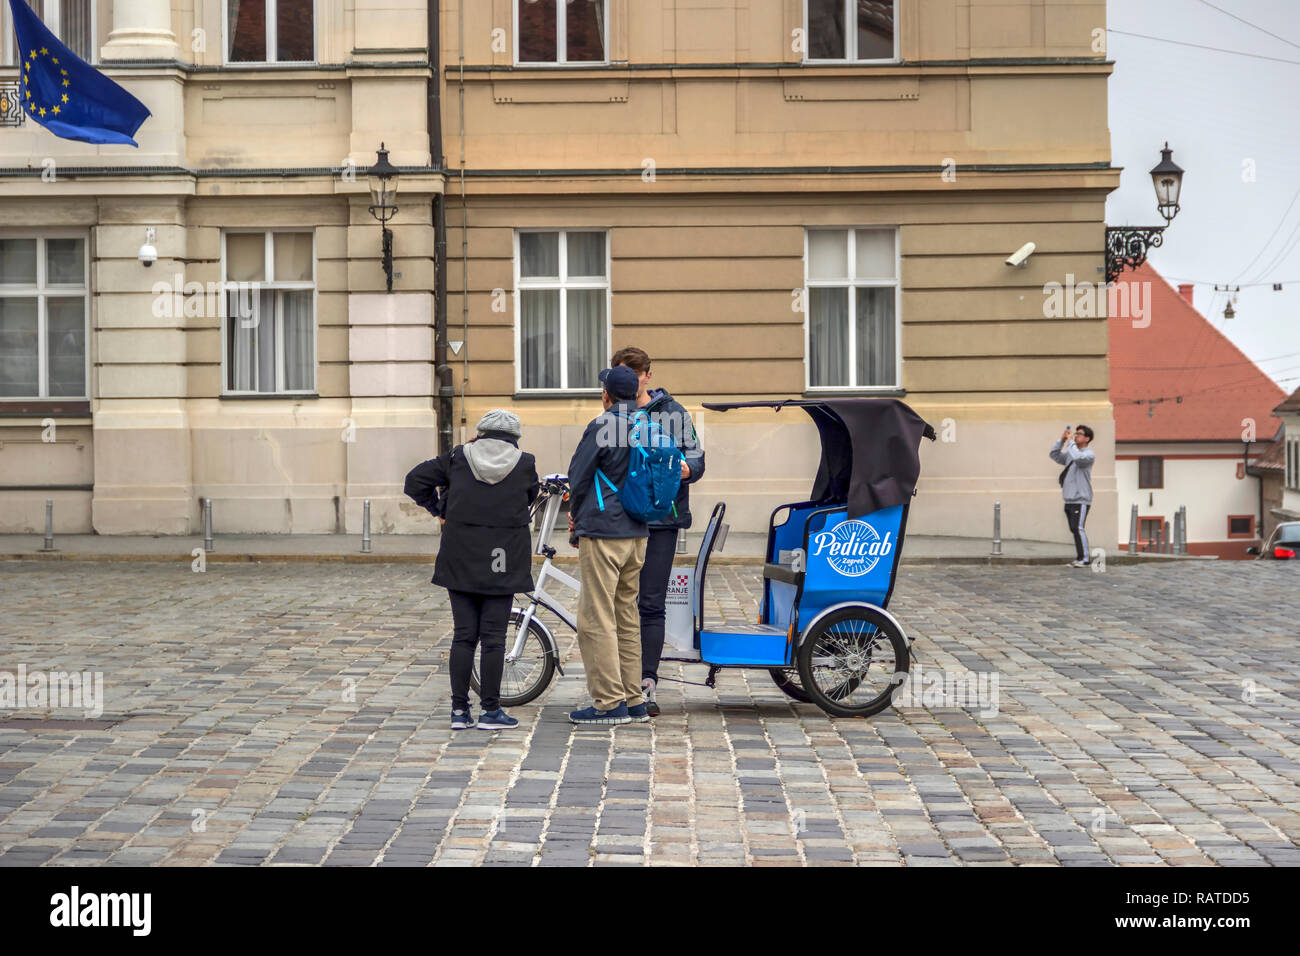 Zagreb, Croatia, November 2018 - Couple of tourists and driver standing next to an electric powered tricycle rickshaw 'Pedicab' at St. Mark's Square - Stock Image